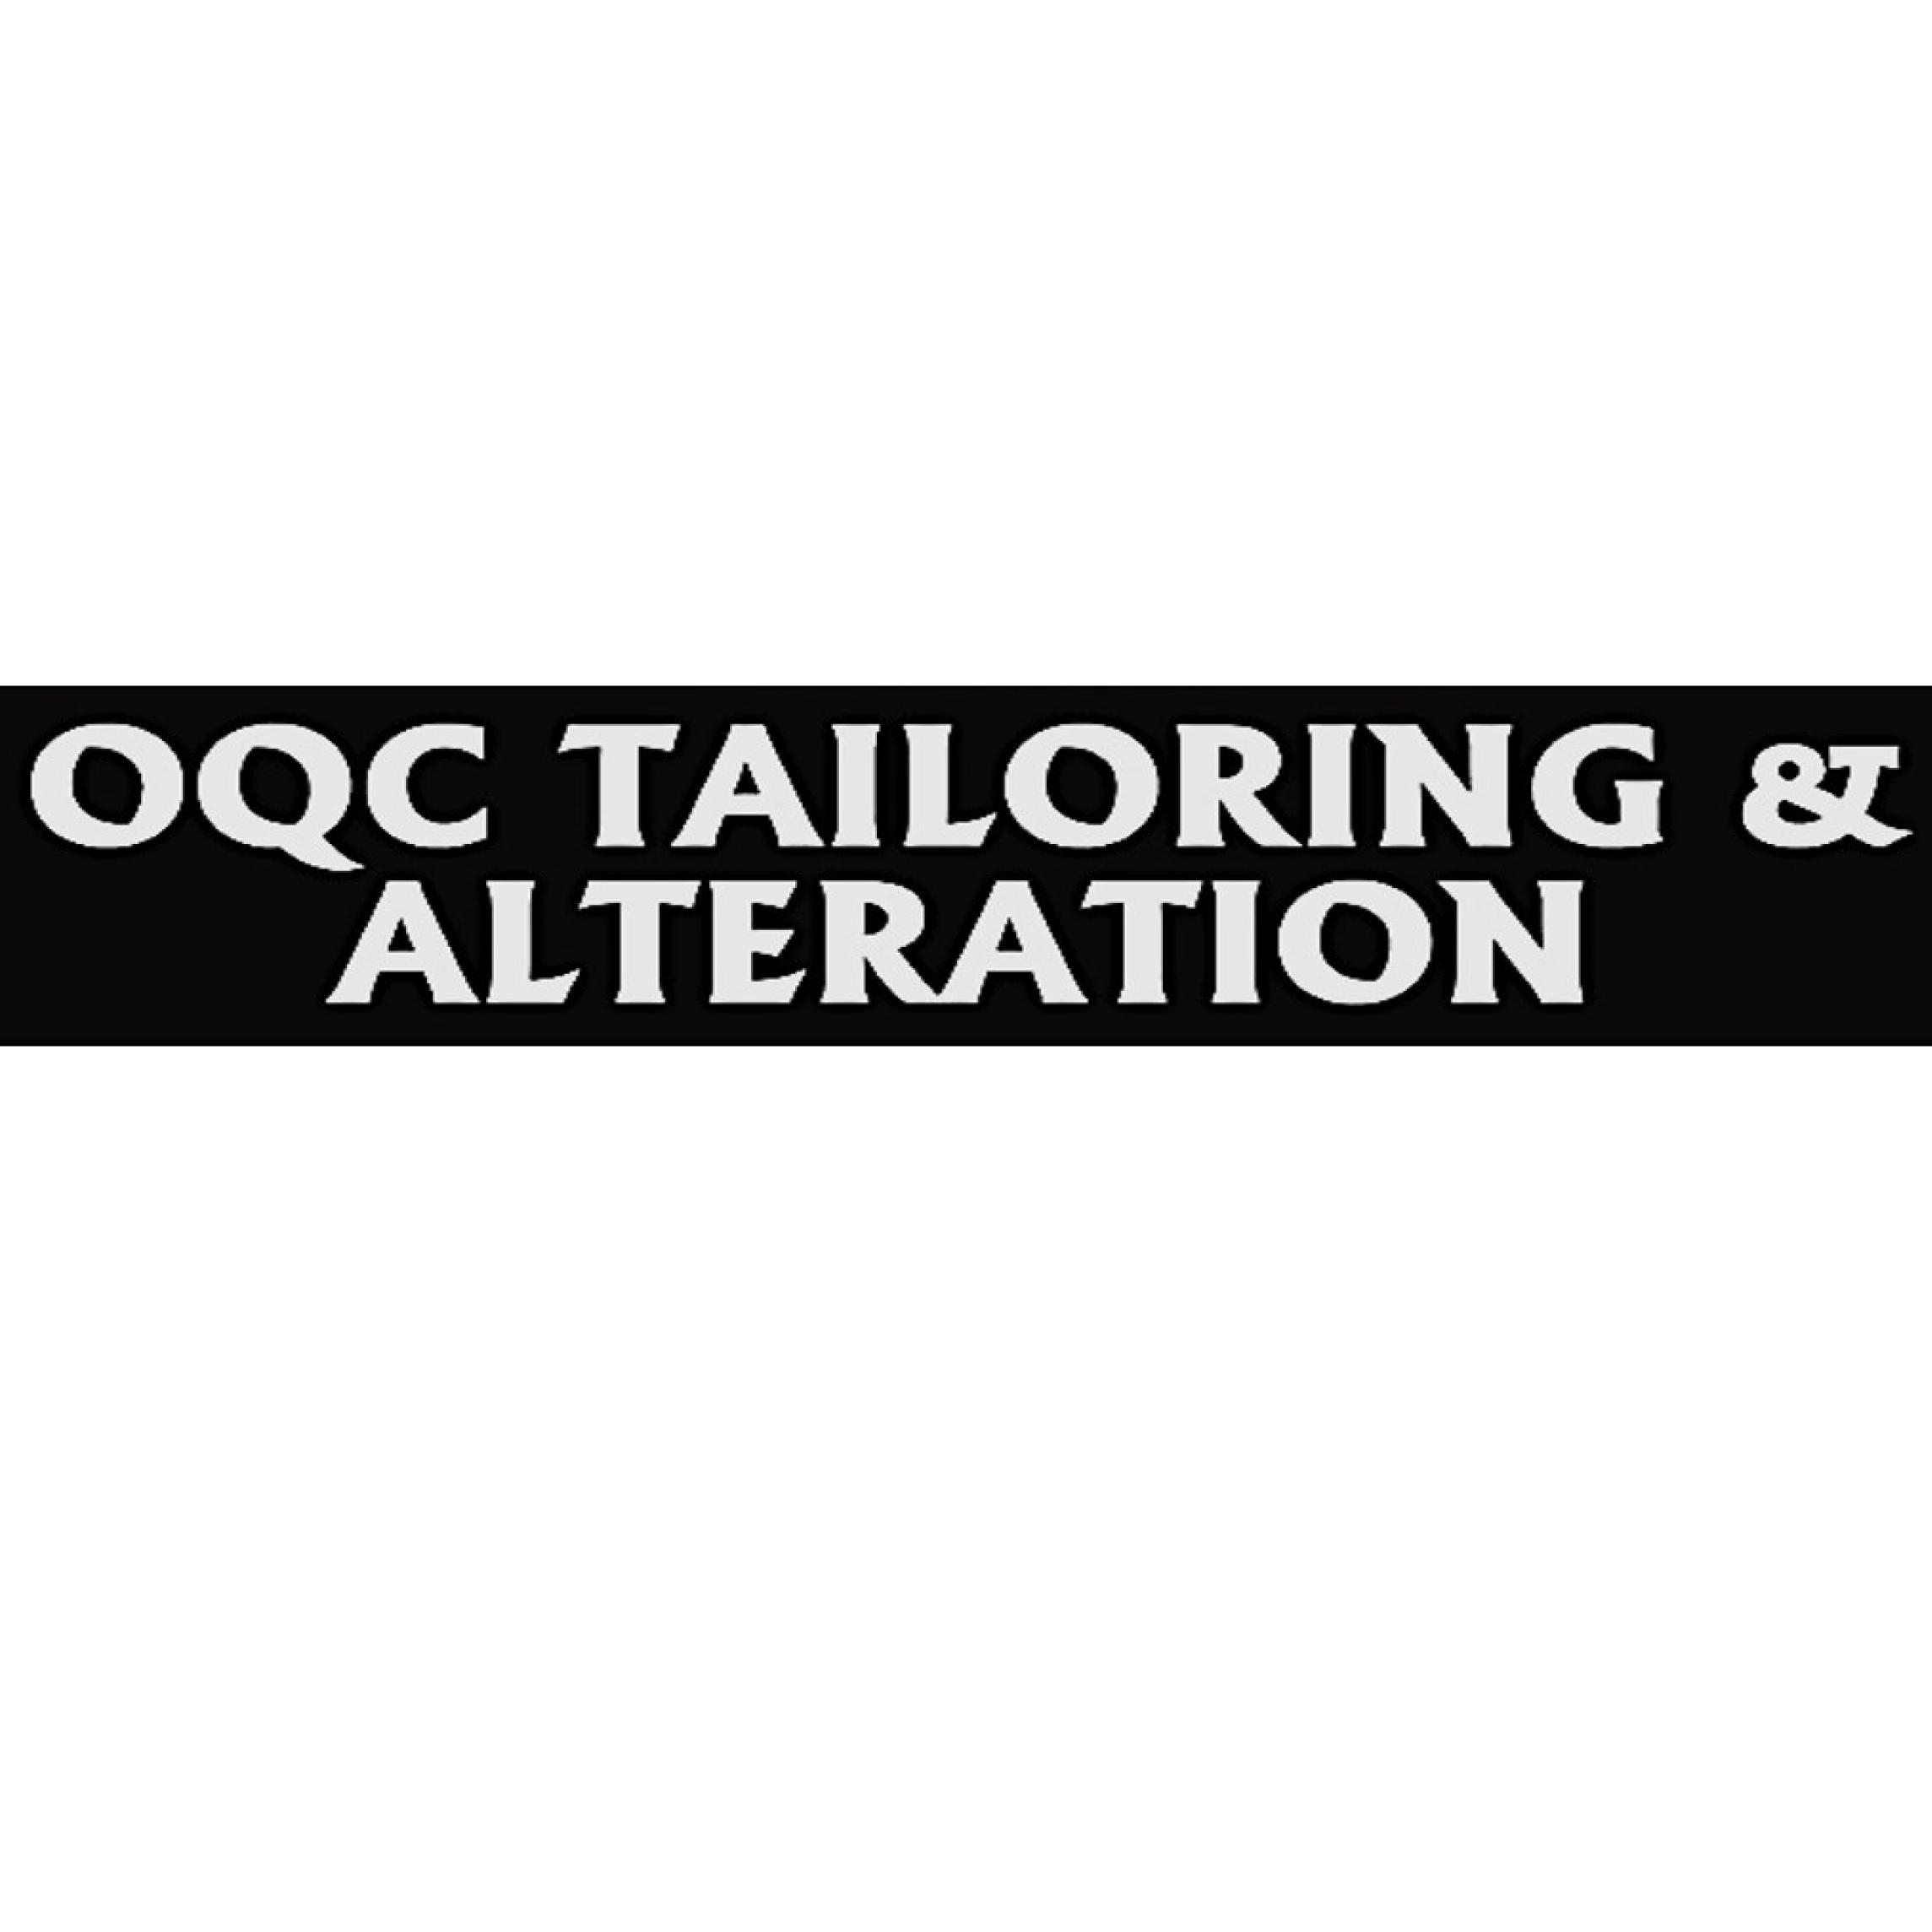 OQC TAILORING & ALTERATION